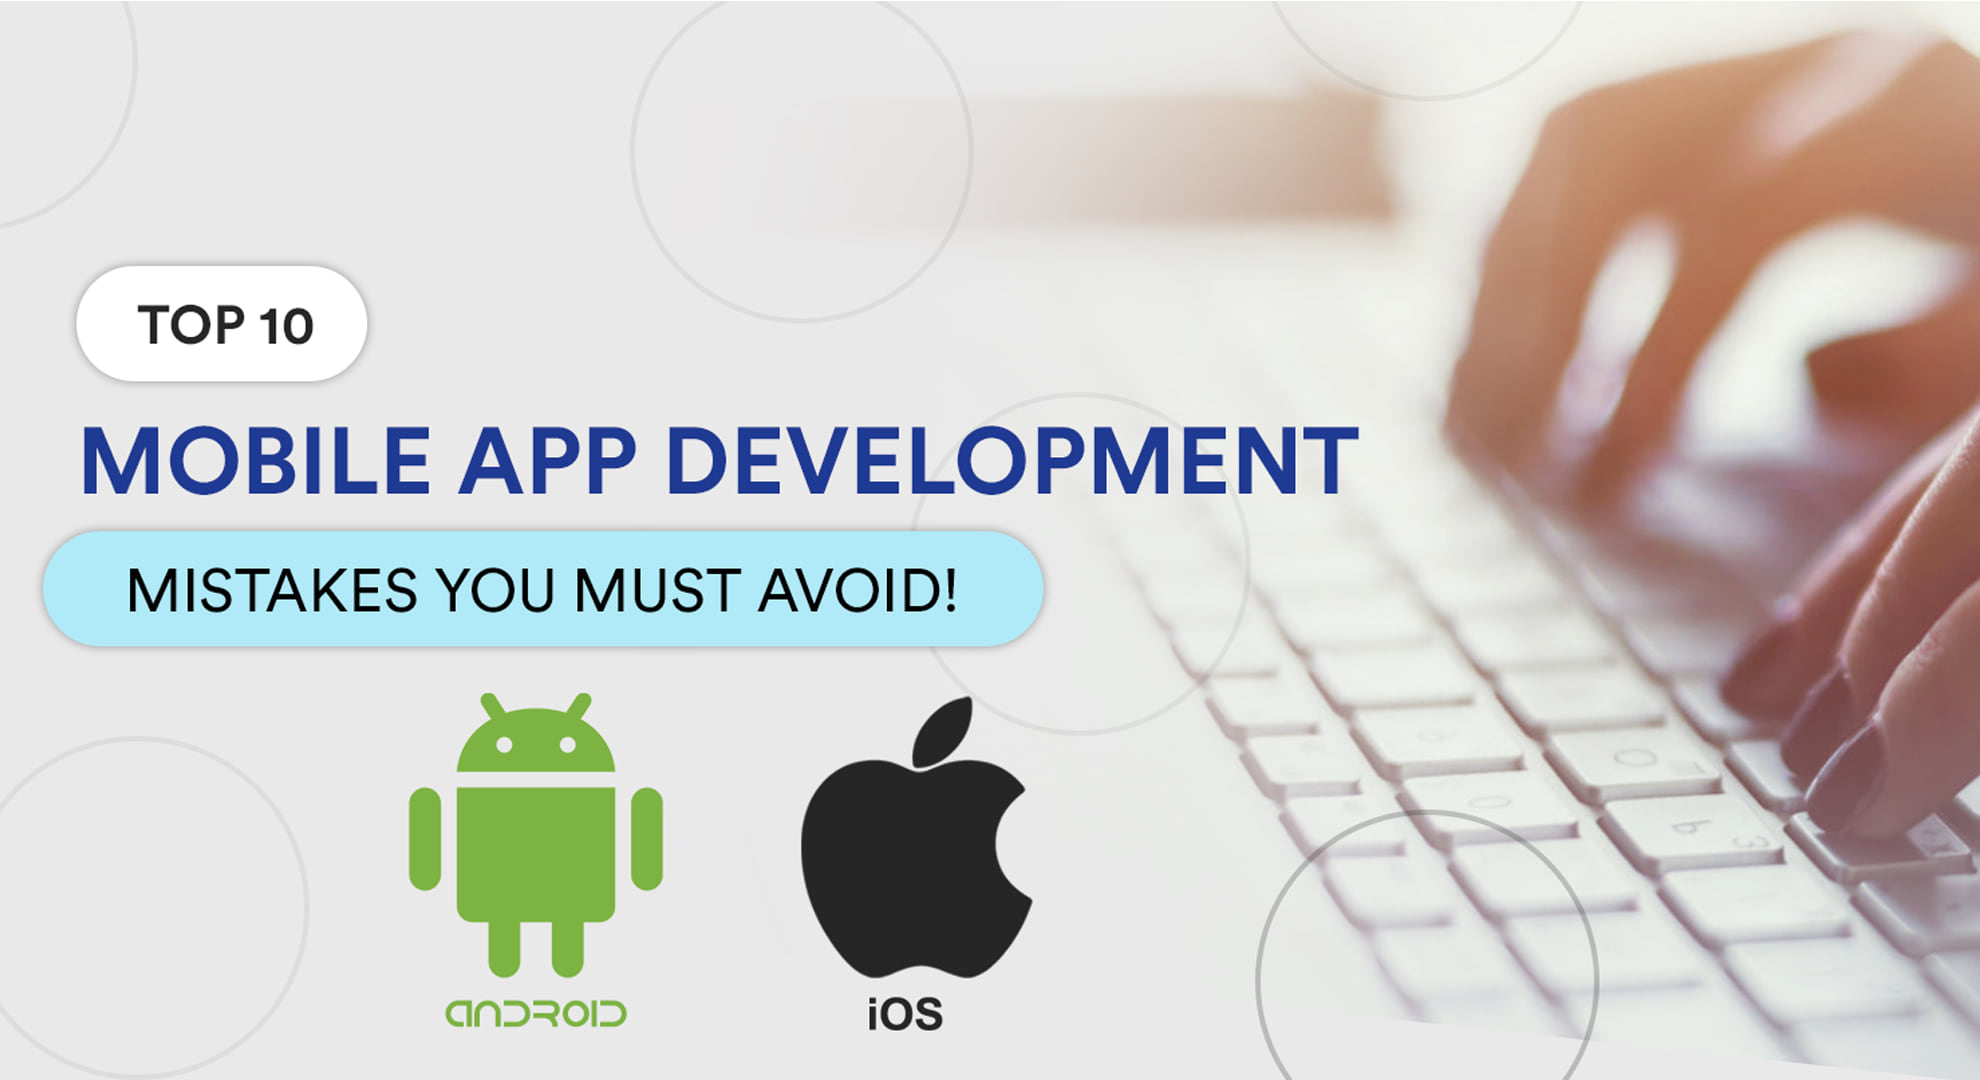 Top 10 Mobile App Development Mistakes You Must Avoid